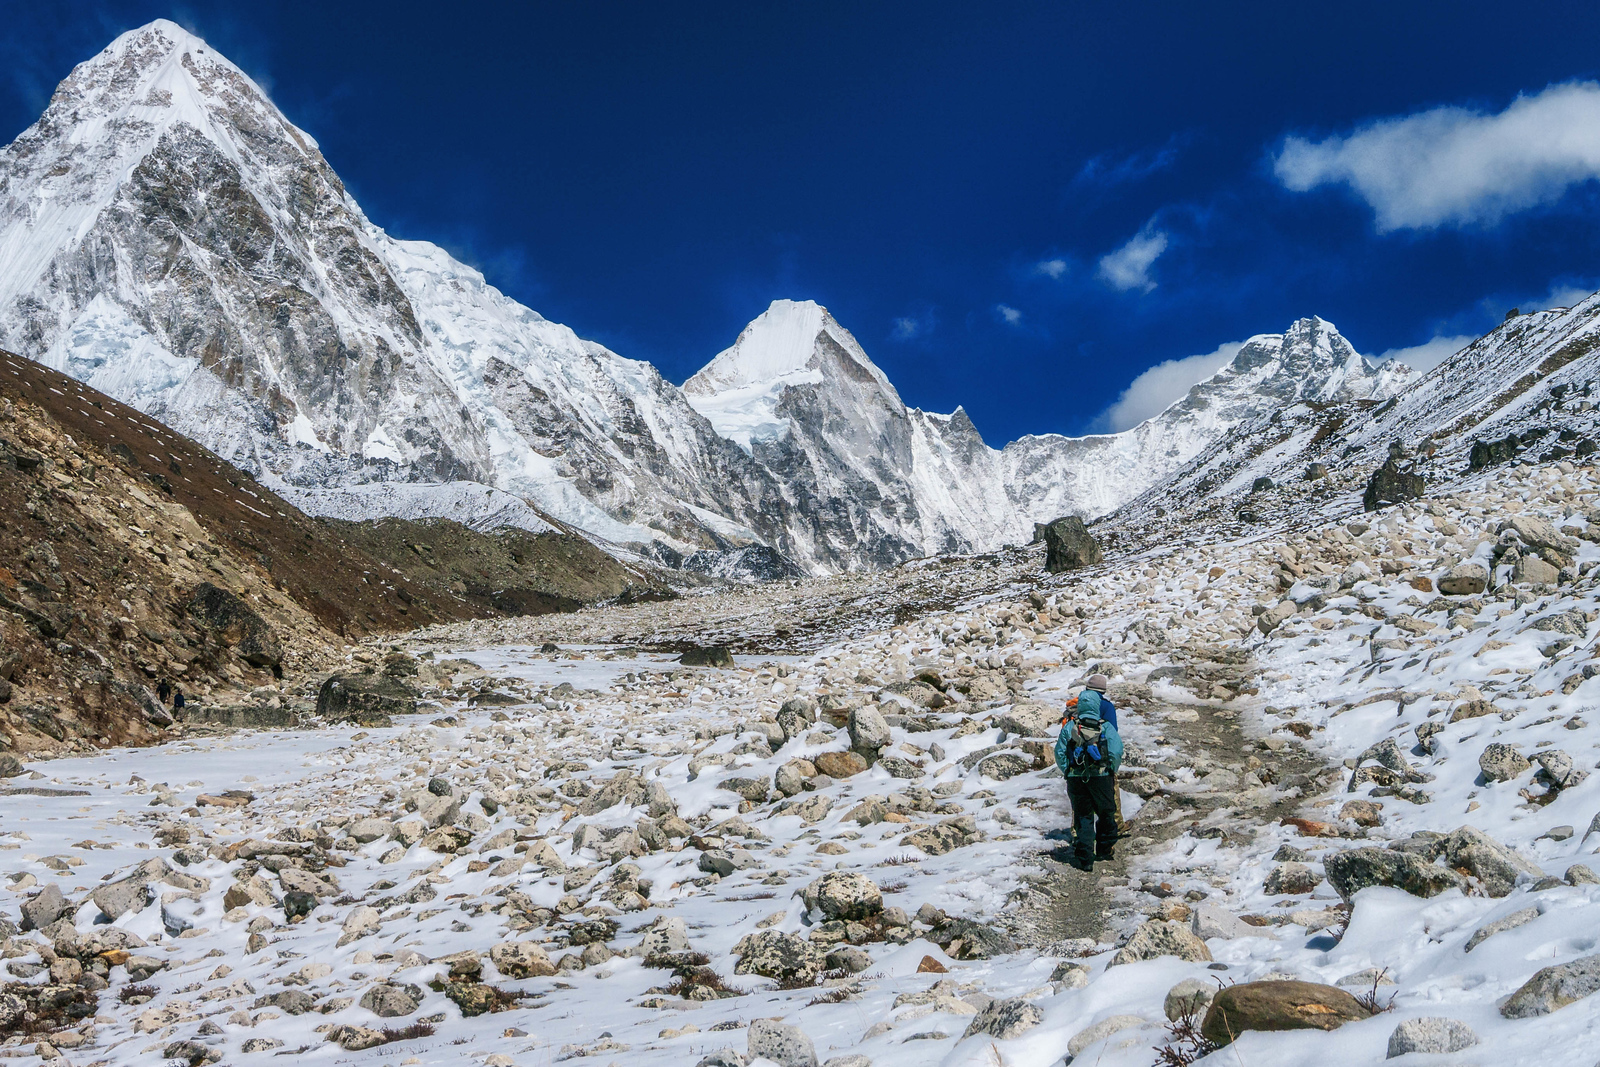 The landscape changes the closer you get to Everest Base Camp